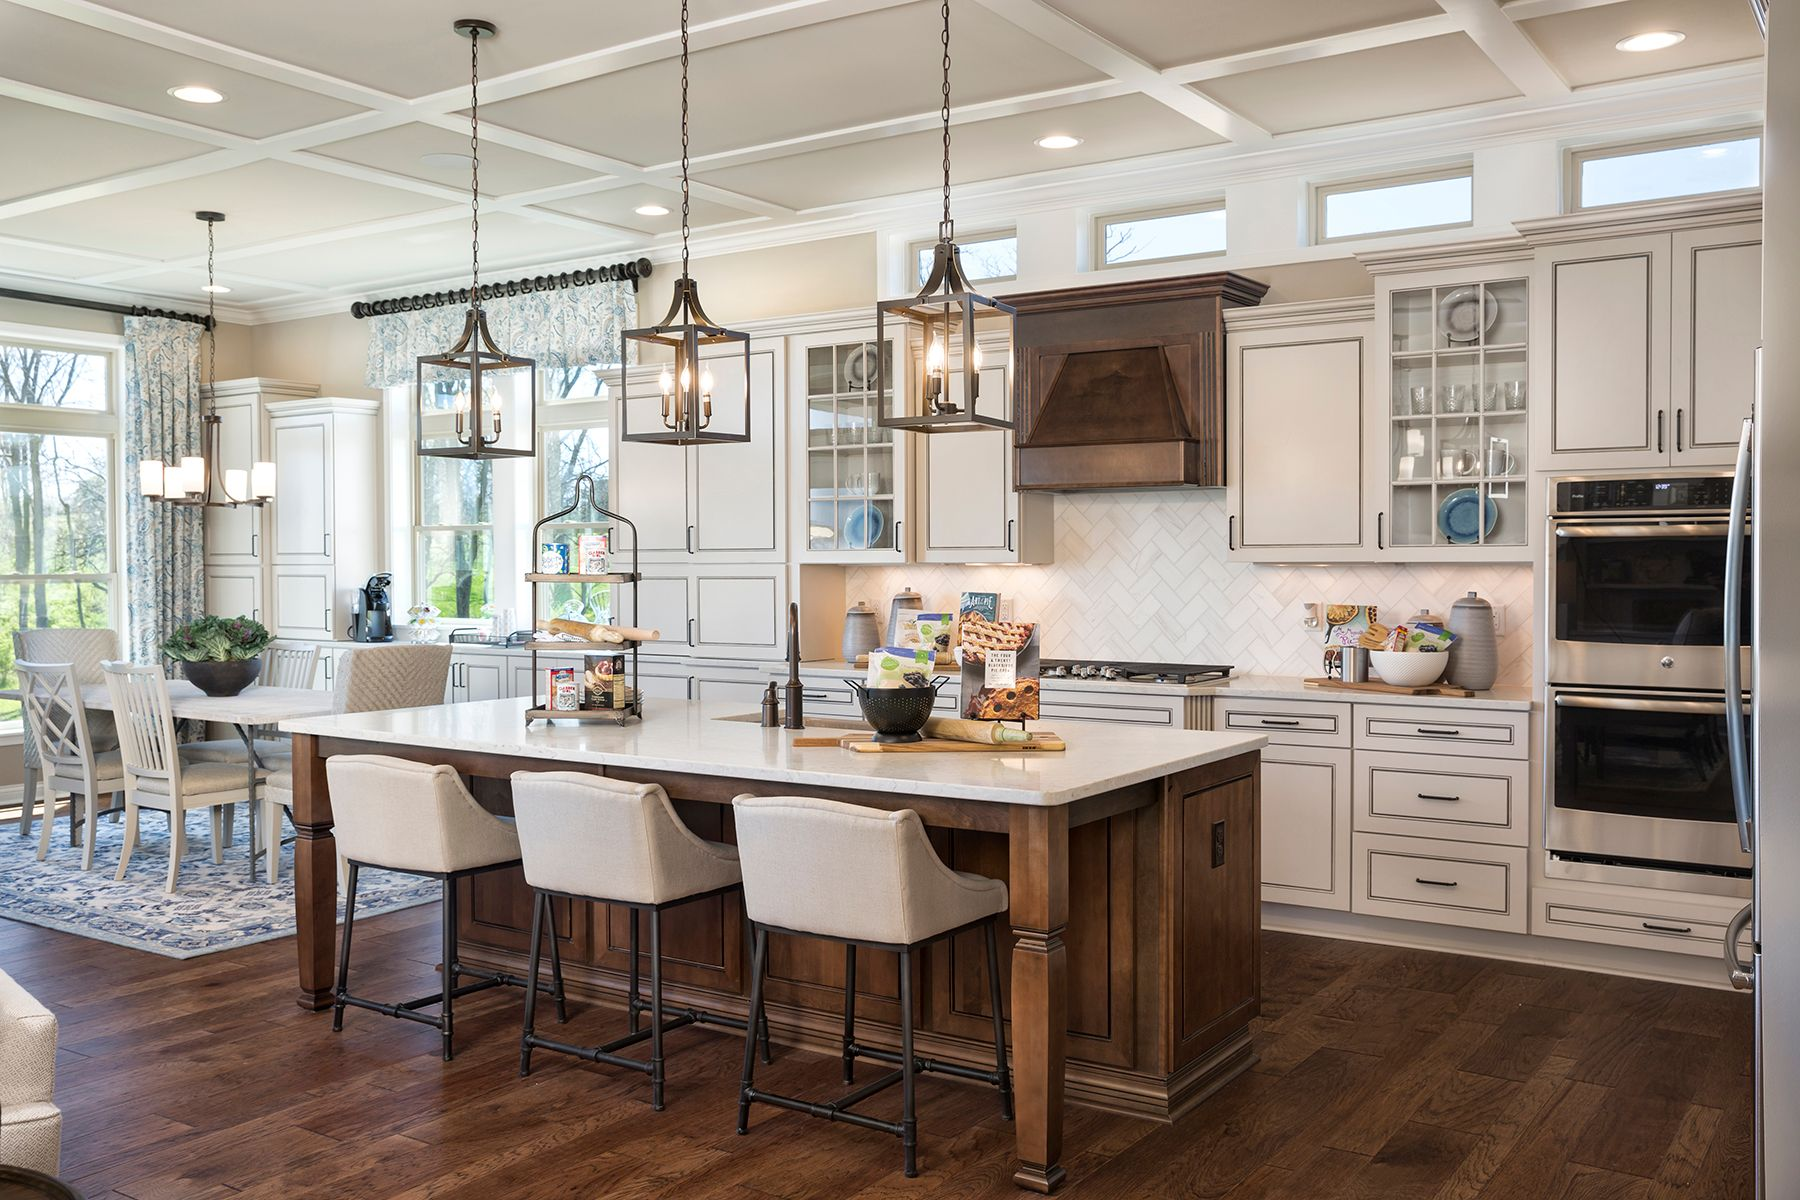 Kitchen featured in the Serenity By M/I Homes in Cincinnati, OH